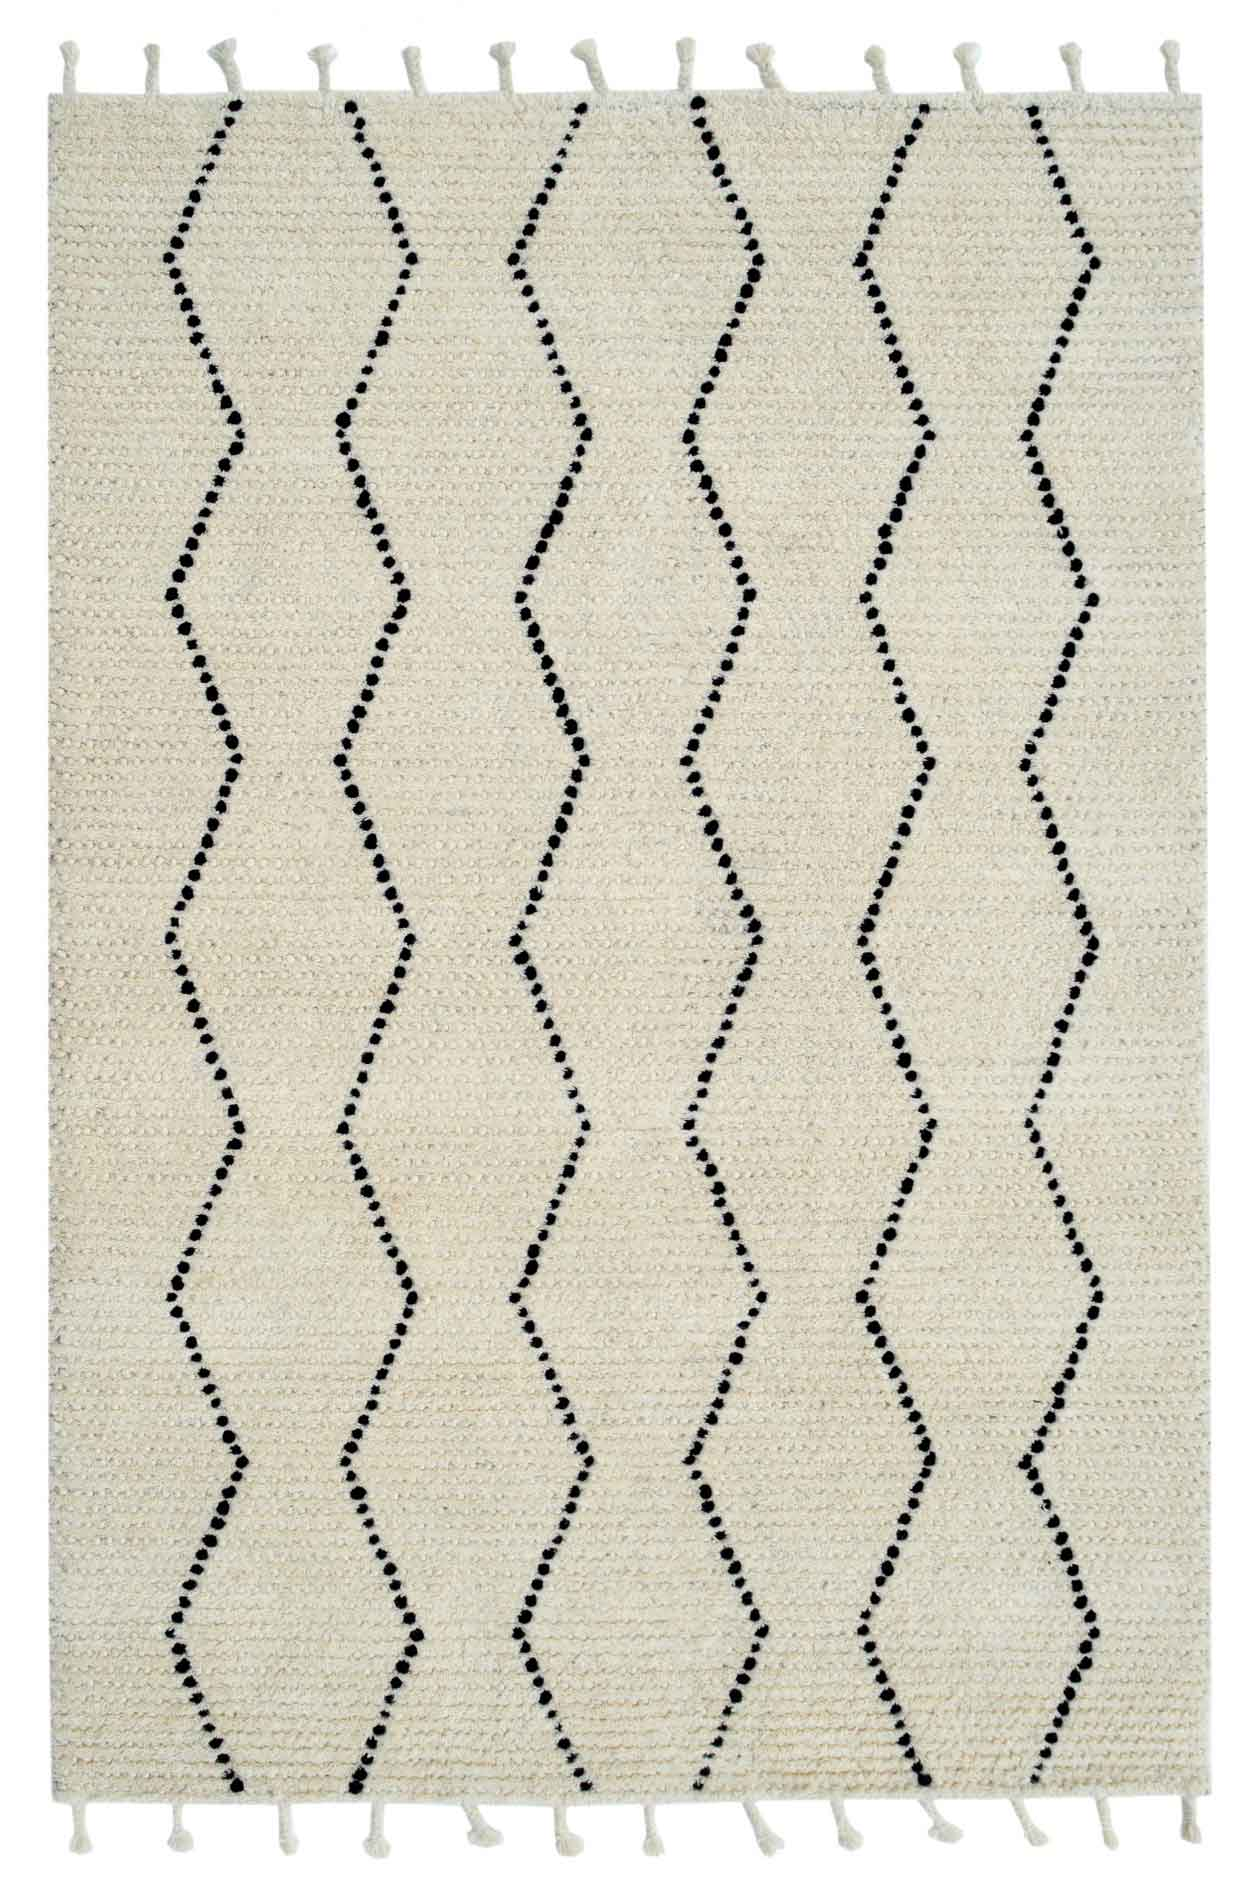 Dynamic Area Rugs Celestial 6950-190 Ivory/Black Moroccan Design